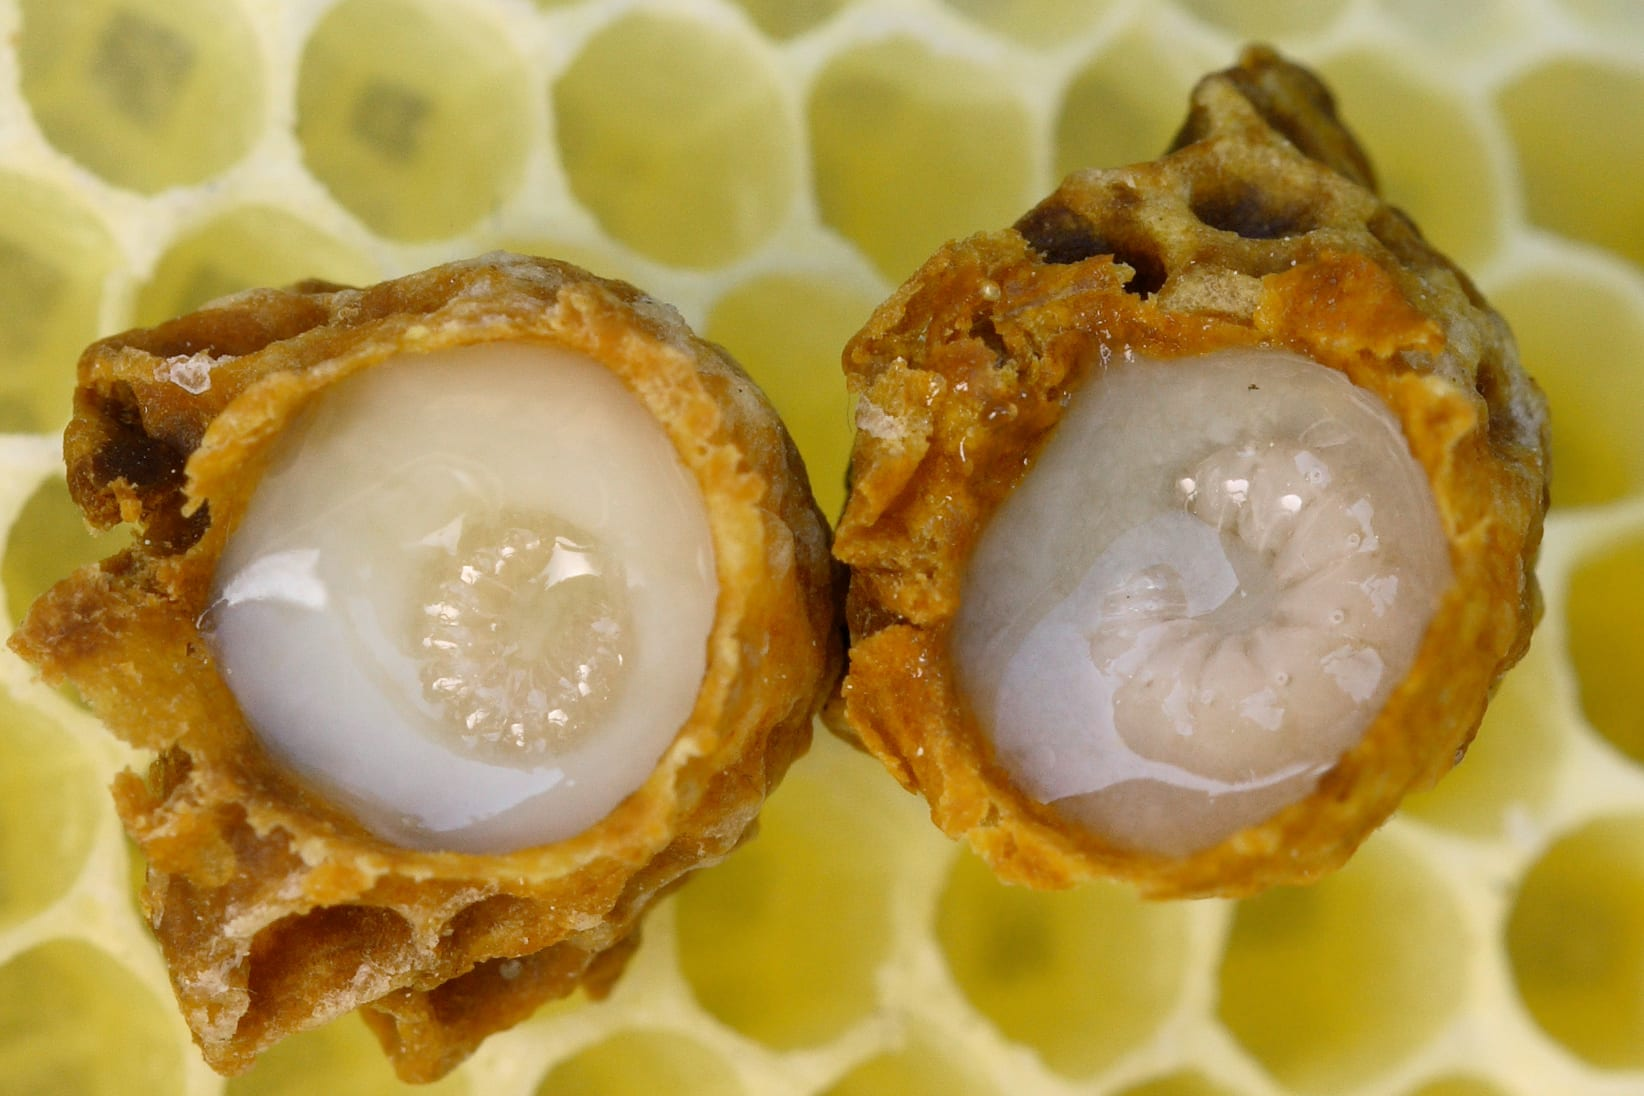 Does Royal Jelly Make a Queen?